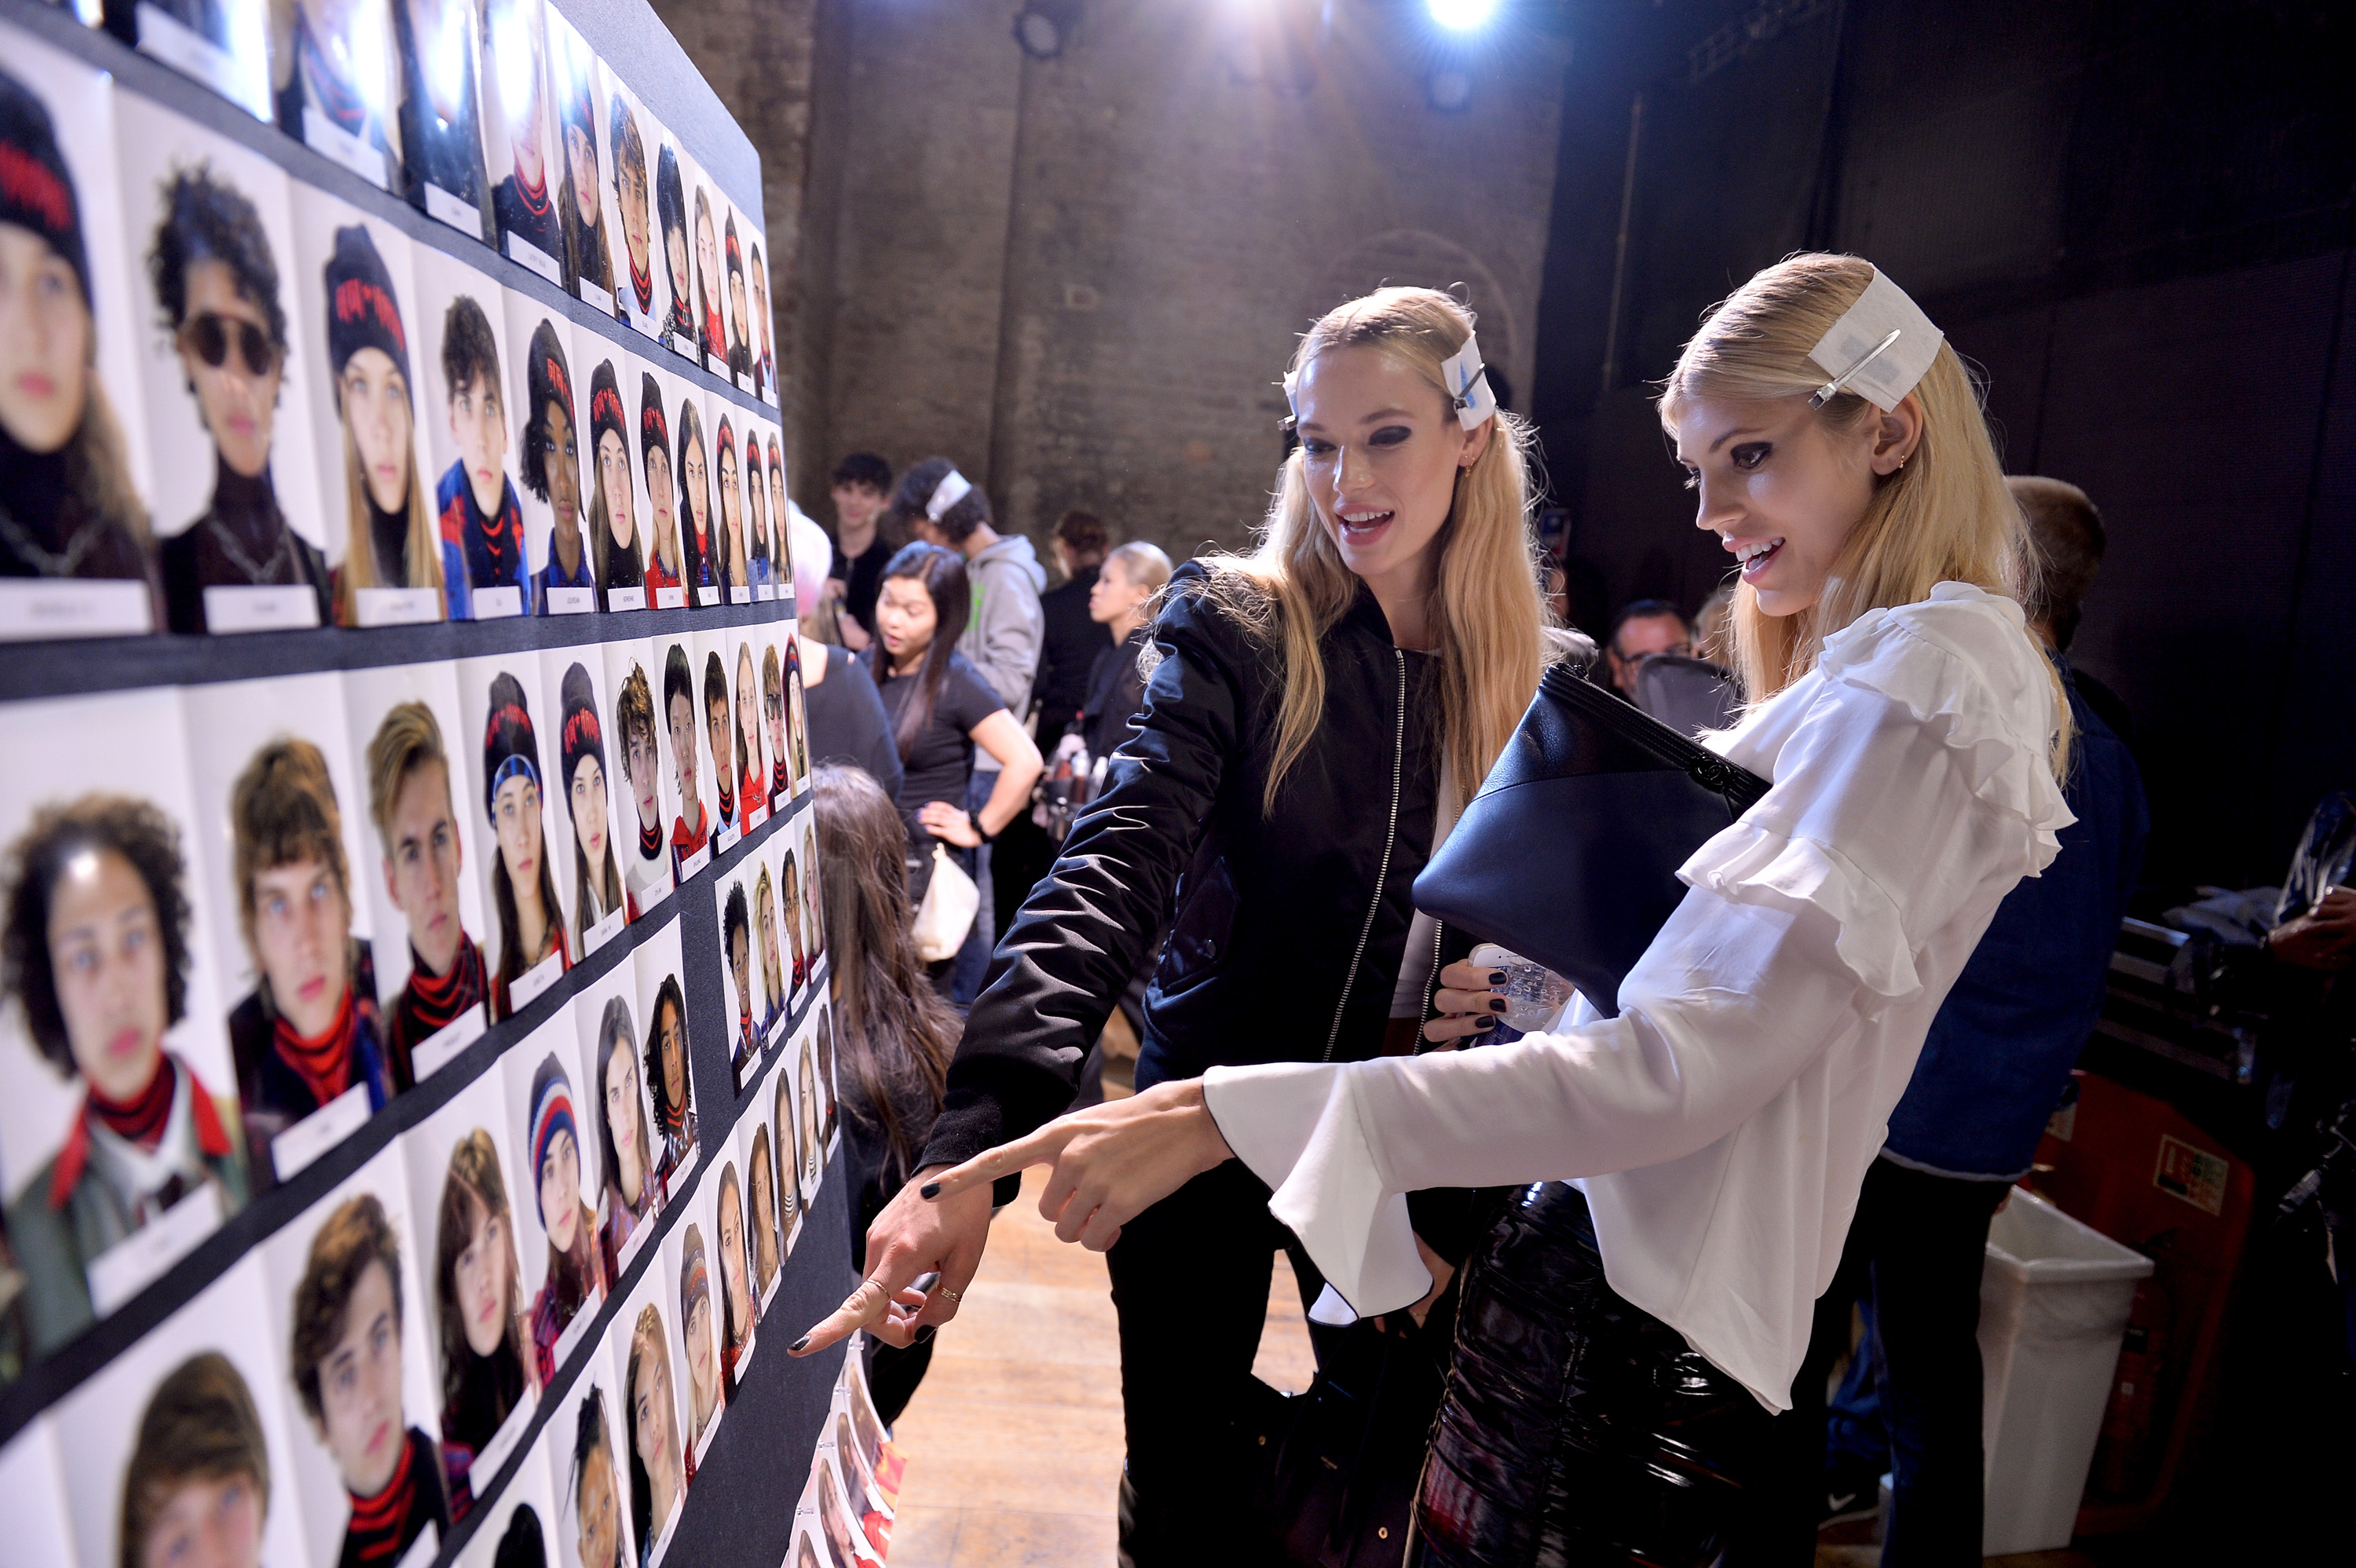 LONDON, ENGLAND - SEPTEMBER 19:  Models backstage ahead of the Tommy Hilfiger TOMMYNOW Fall 2017 Show during London Fashion Week September 2017 at the Roundhouse on September 19, 2017 in London, England.  (Photo by Jeff Spicer/Getty Images for Tommy Hilfiger)